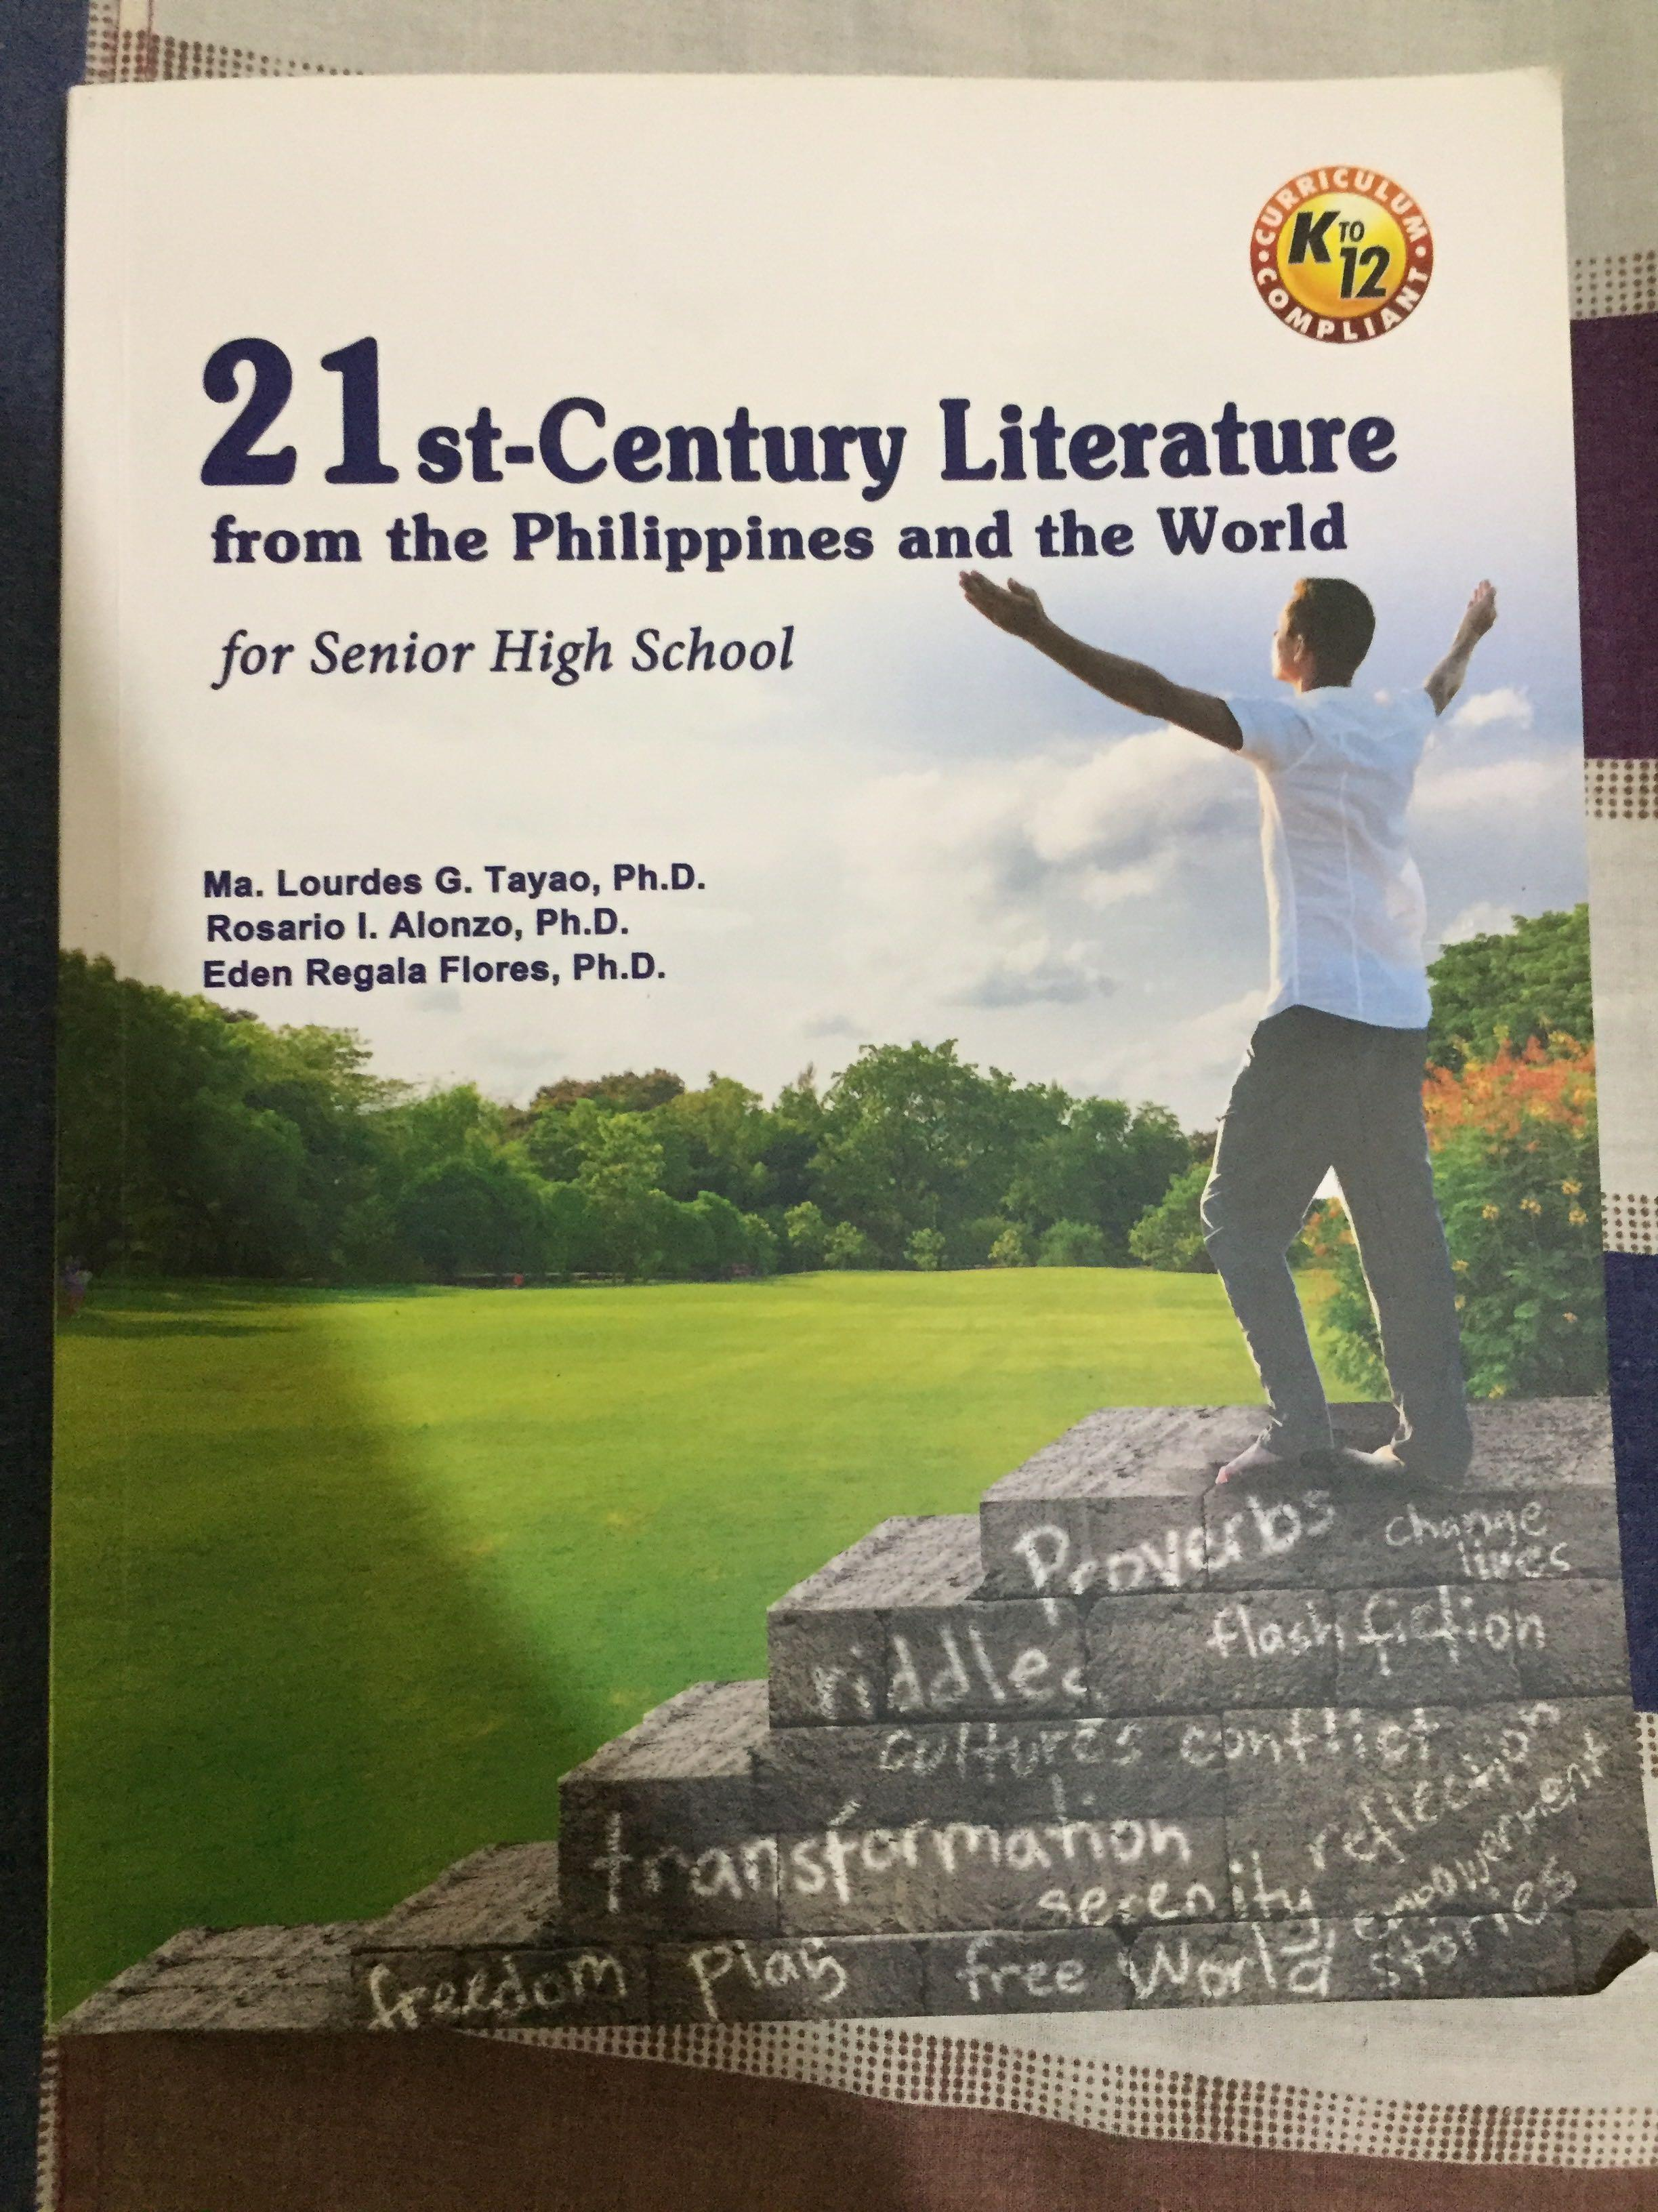 21st- Century Literature from the Philippines and the world for senior high school by Ma. Lourdes G. Tayao, Ph.D.